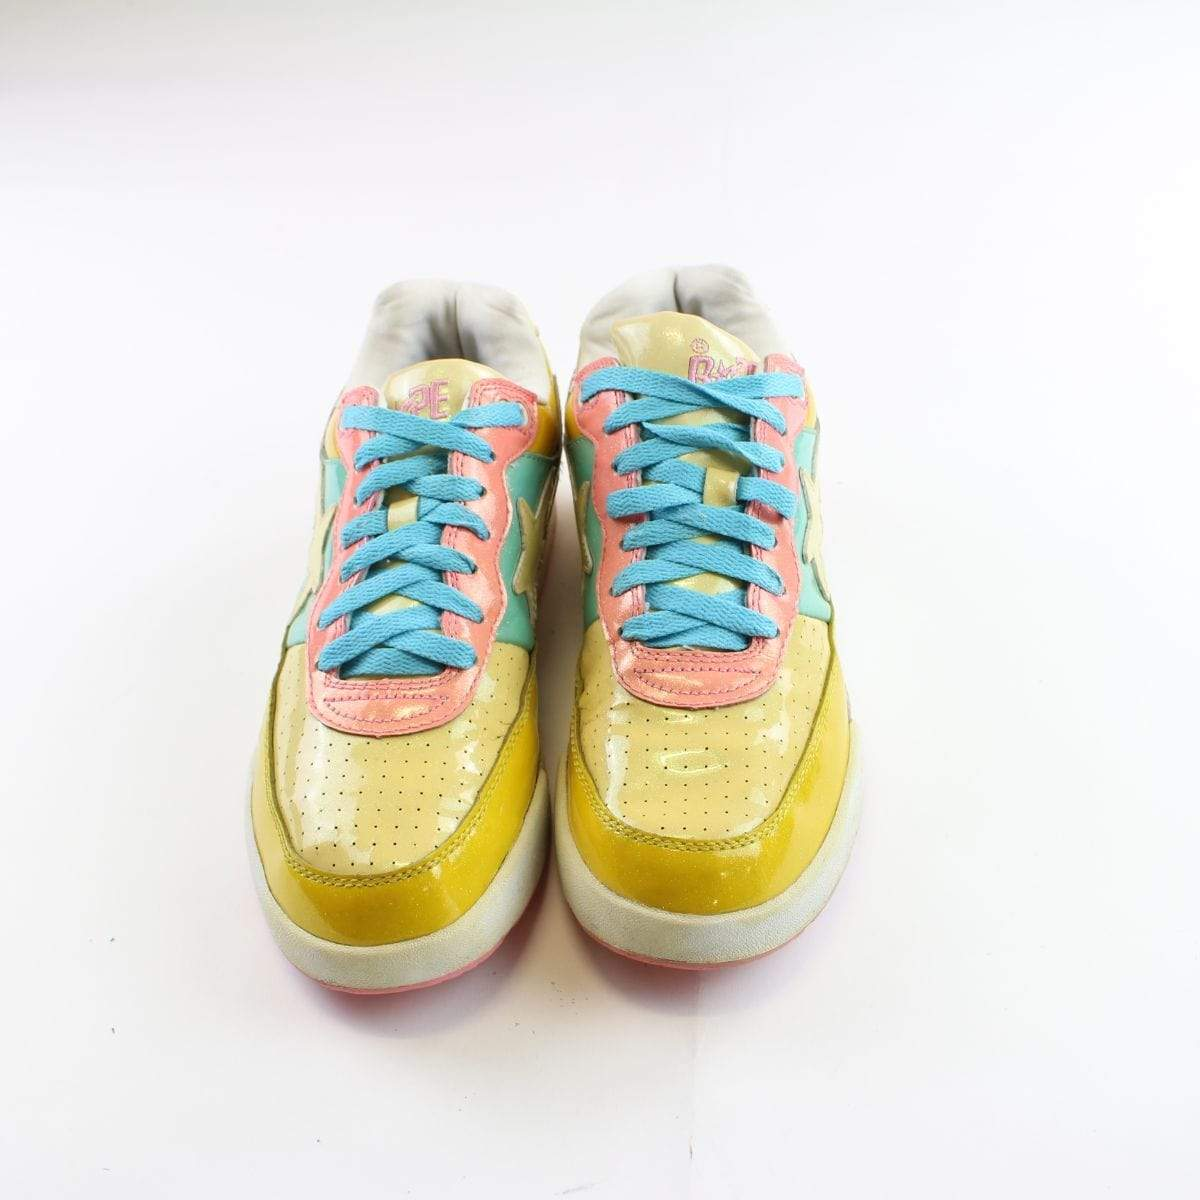 bape cotton candy roadsta - SaruGeneral